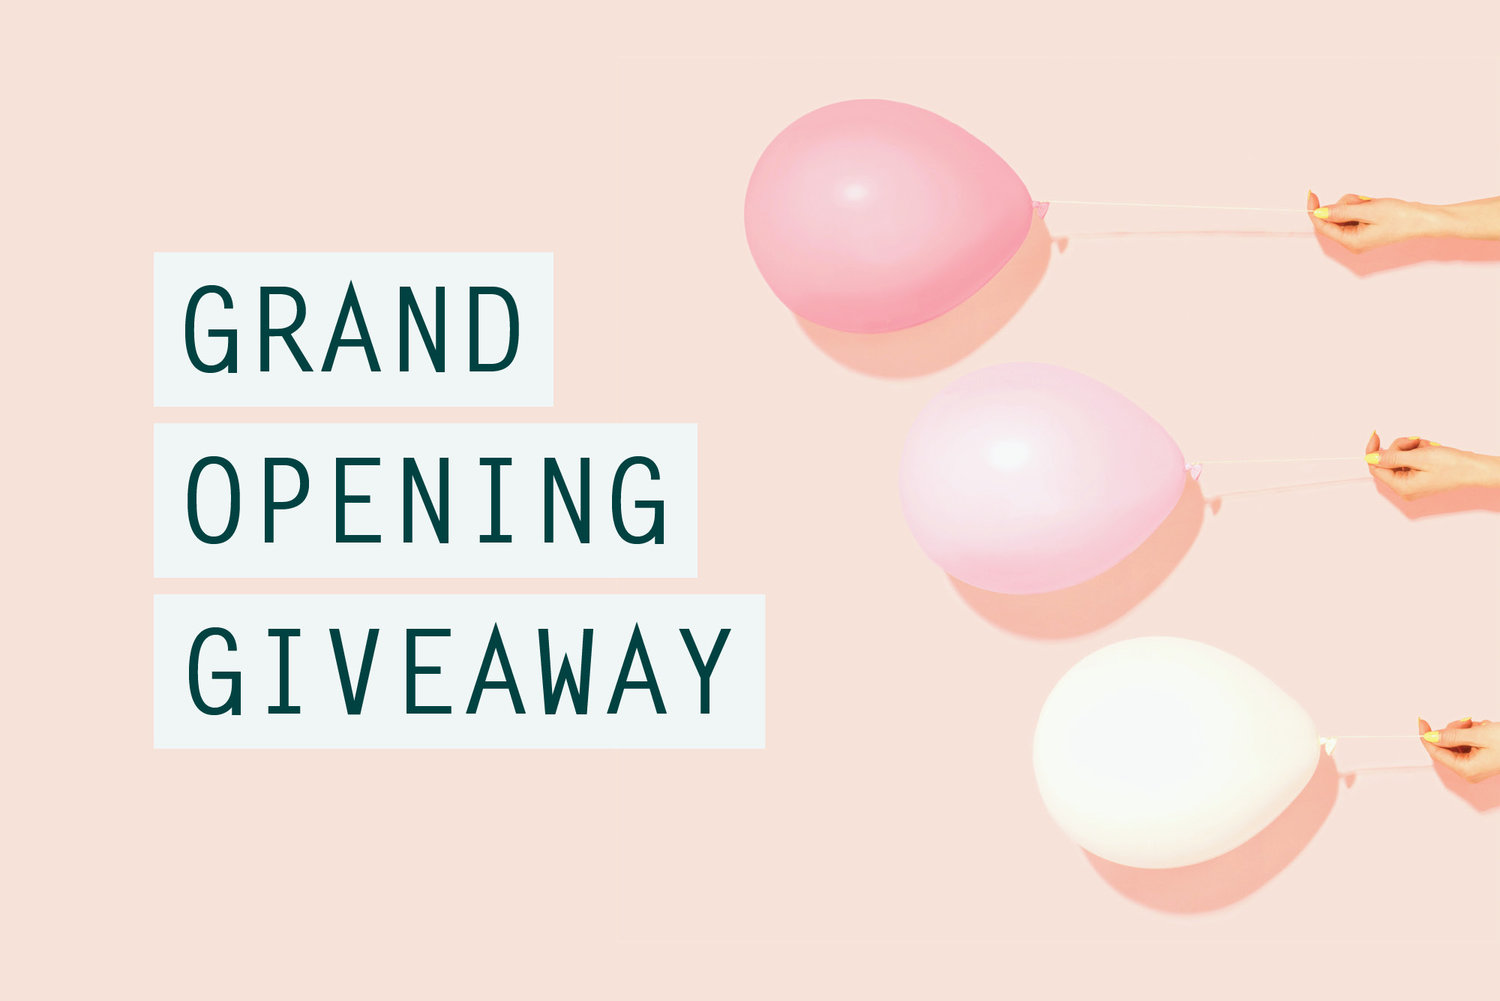 Grand+opening+giveaway+website+art+26.jpg